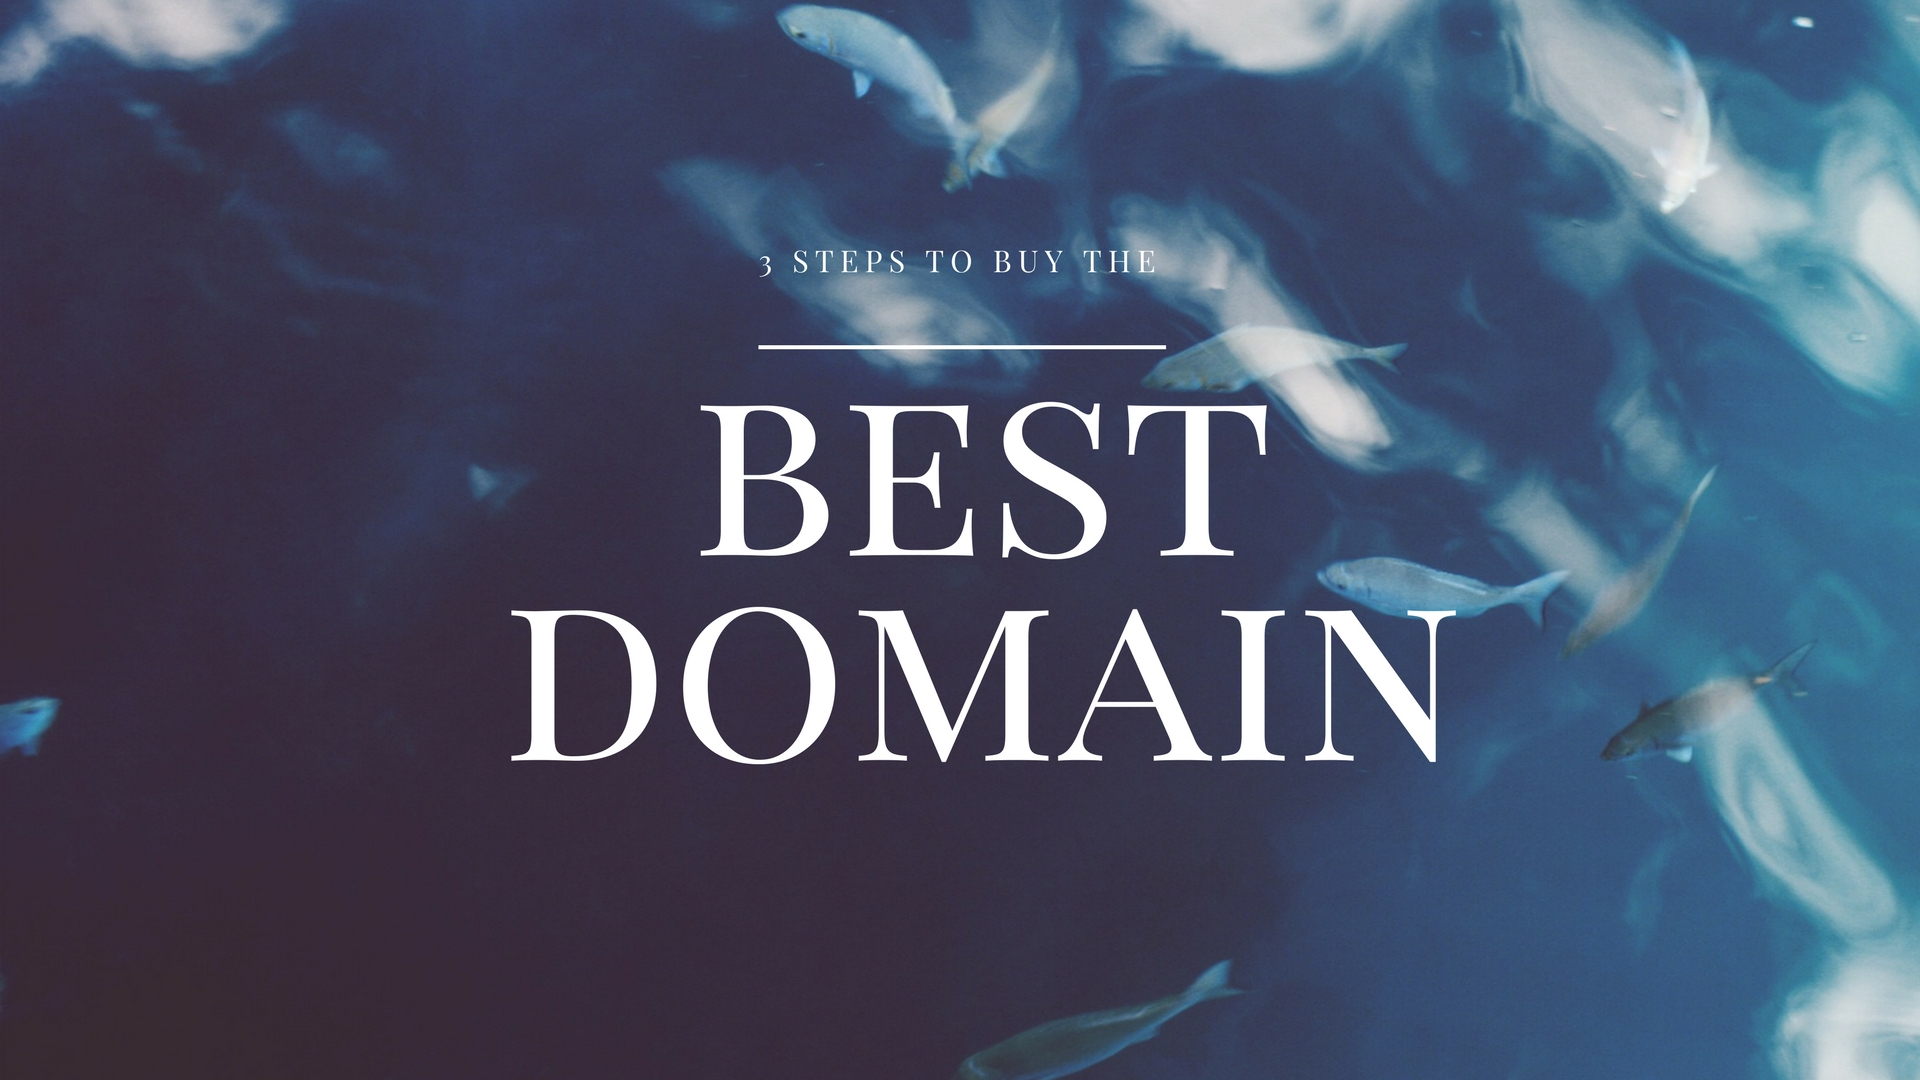 buy best domain name